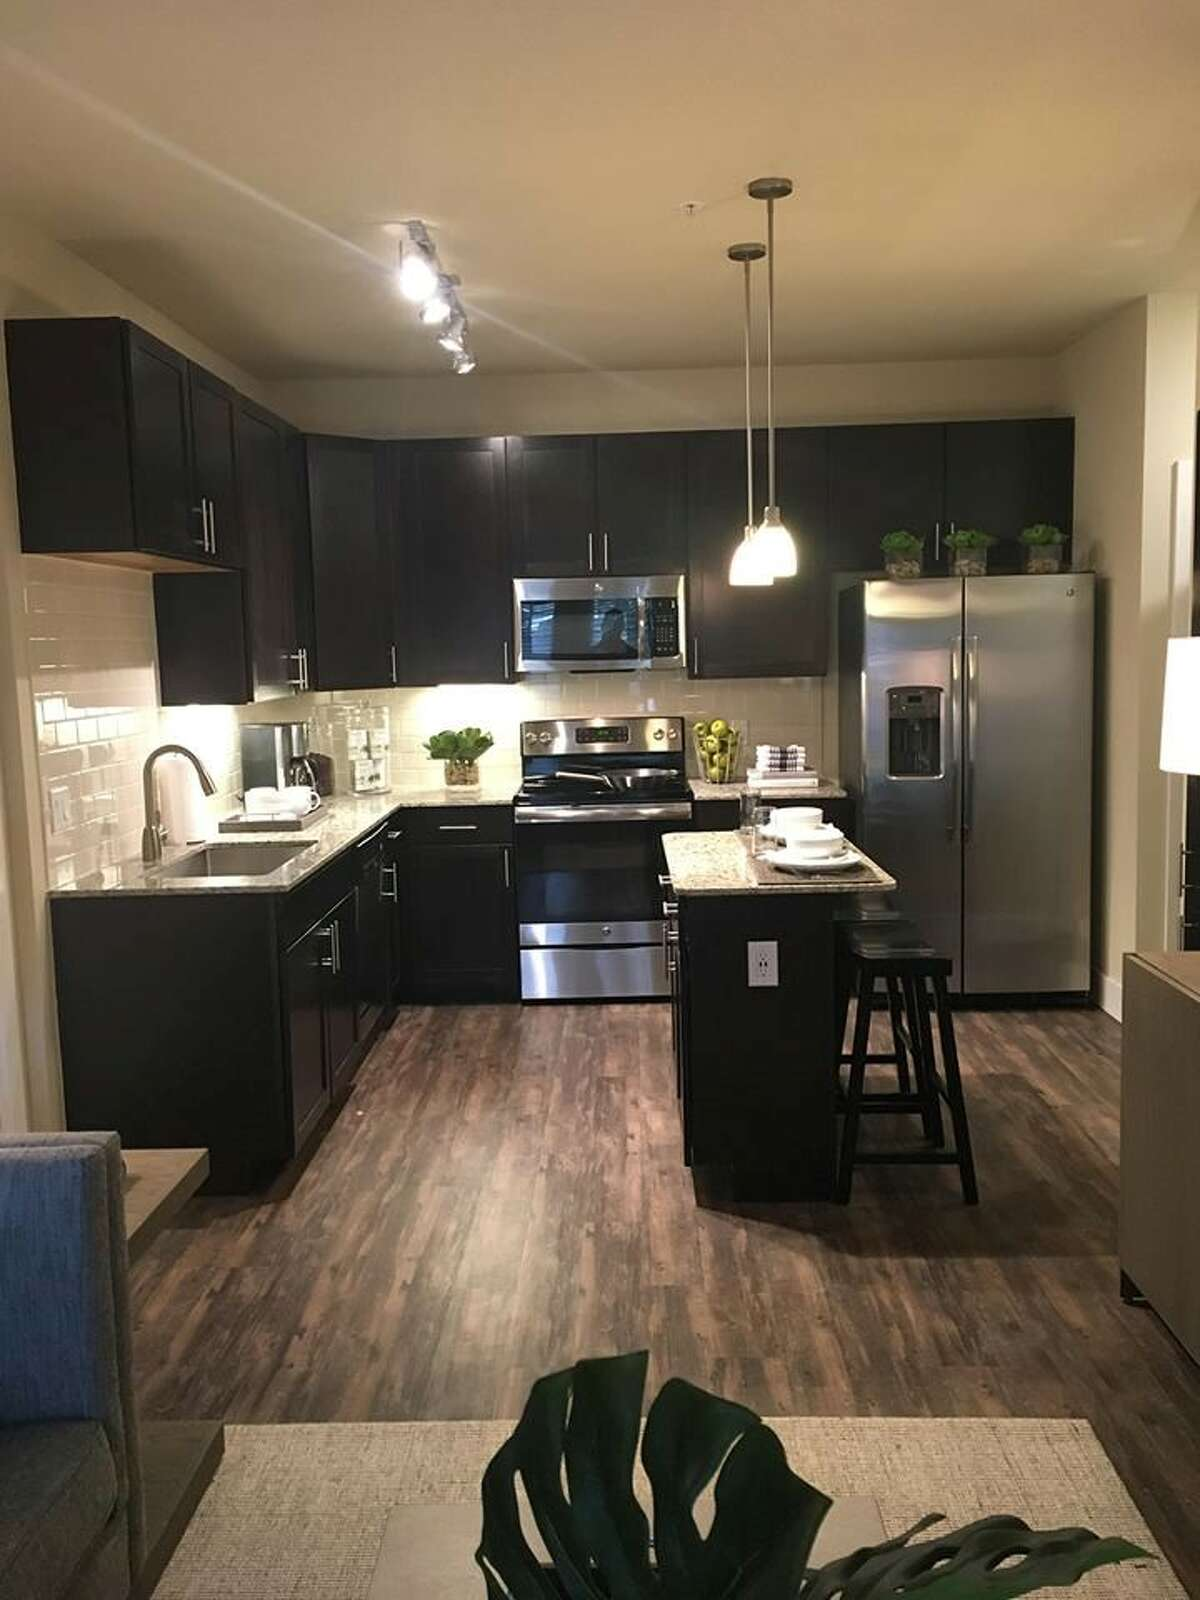 Allied Orion Group's Southfork Lake is now open for leasing at 3333 Southfork Parkway in Manvel.